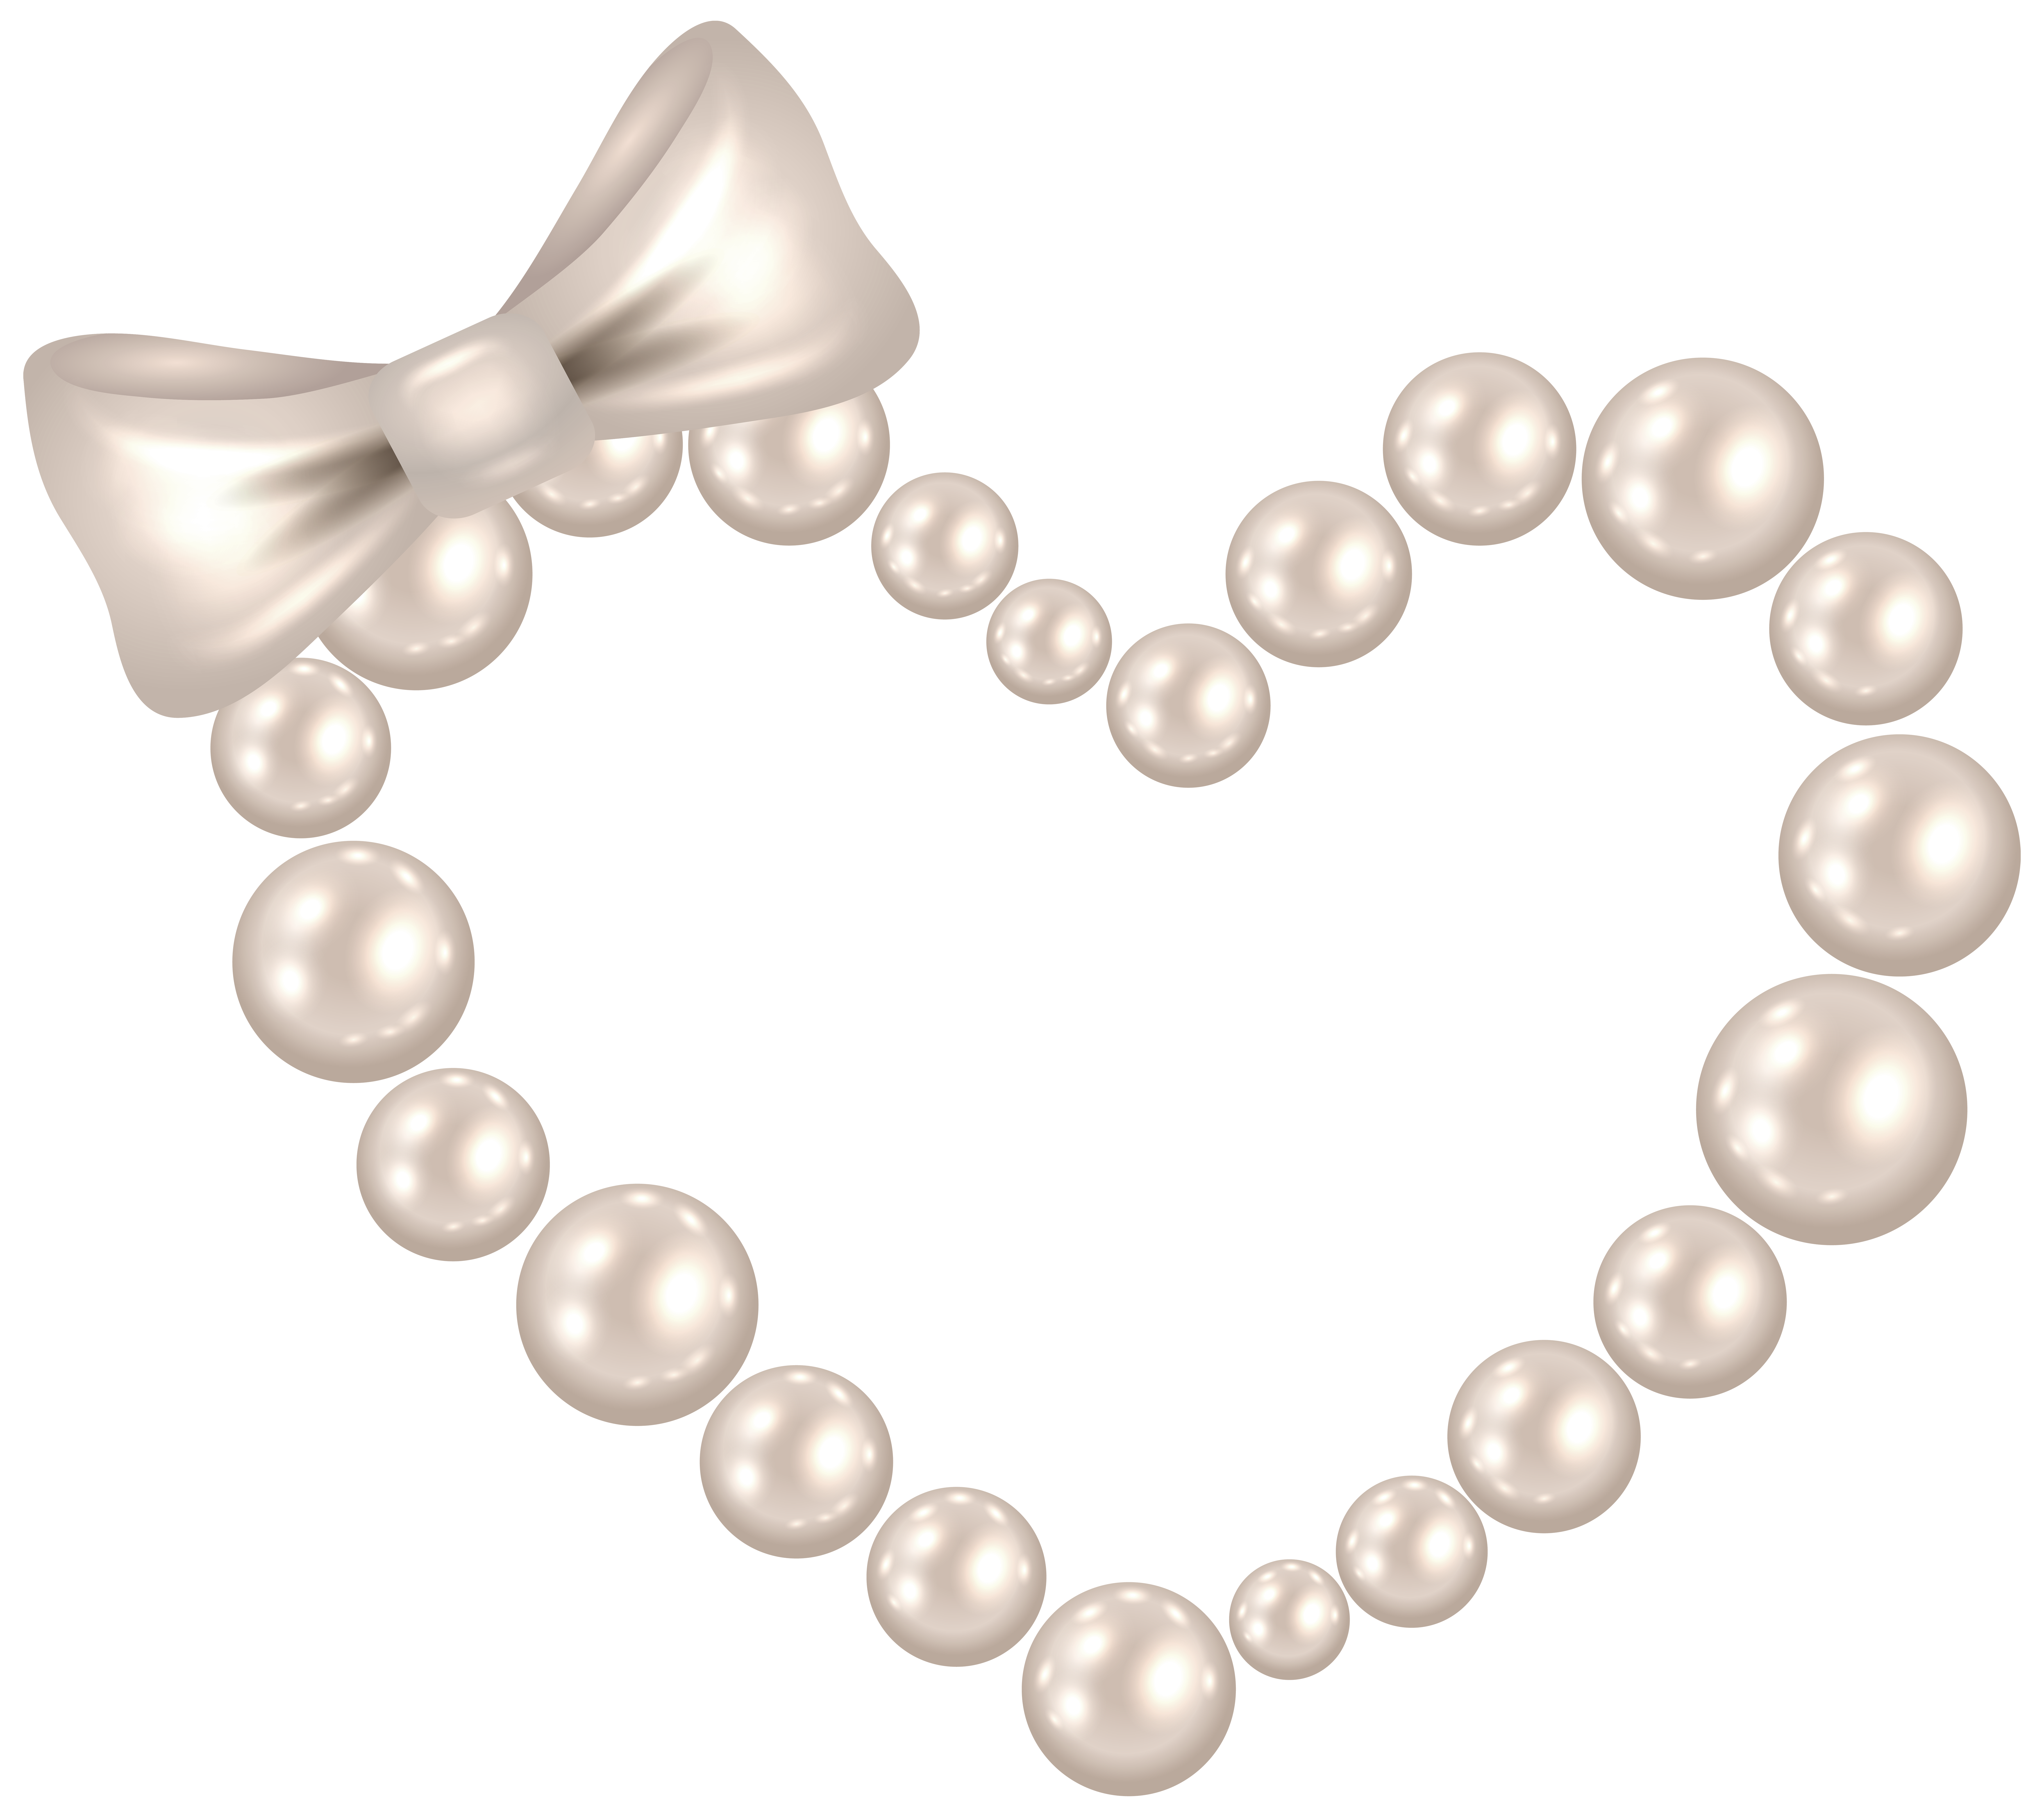 Heart with bow transparent. Necklace clipart pearl necklace